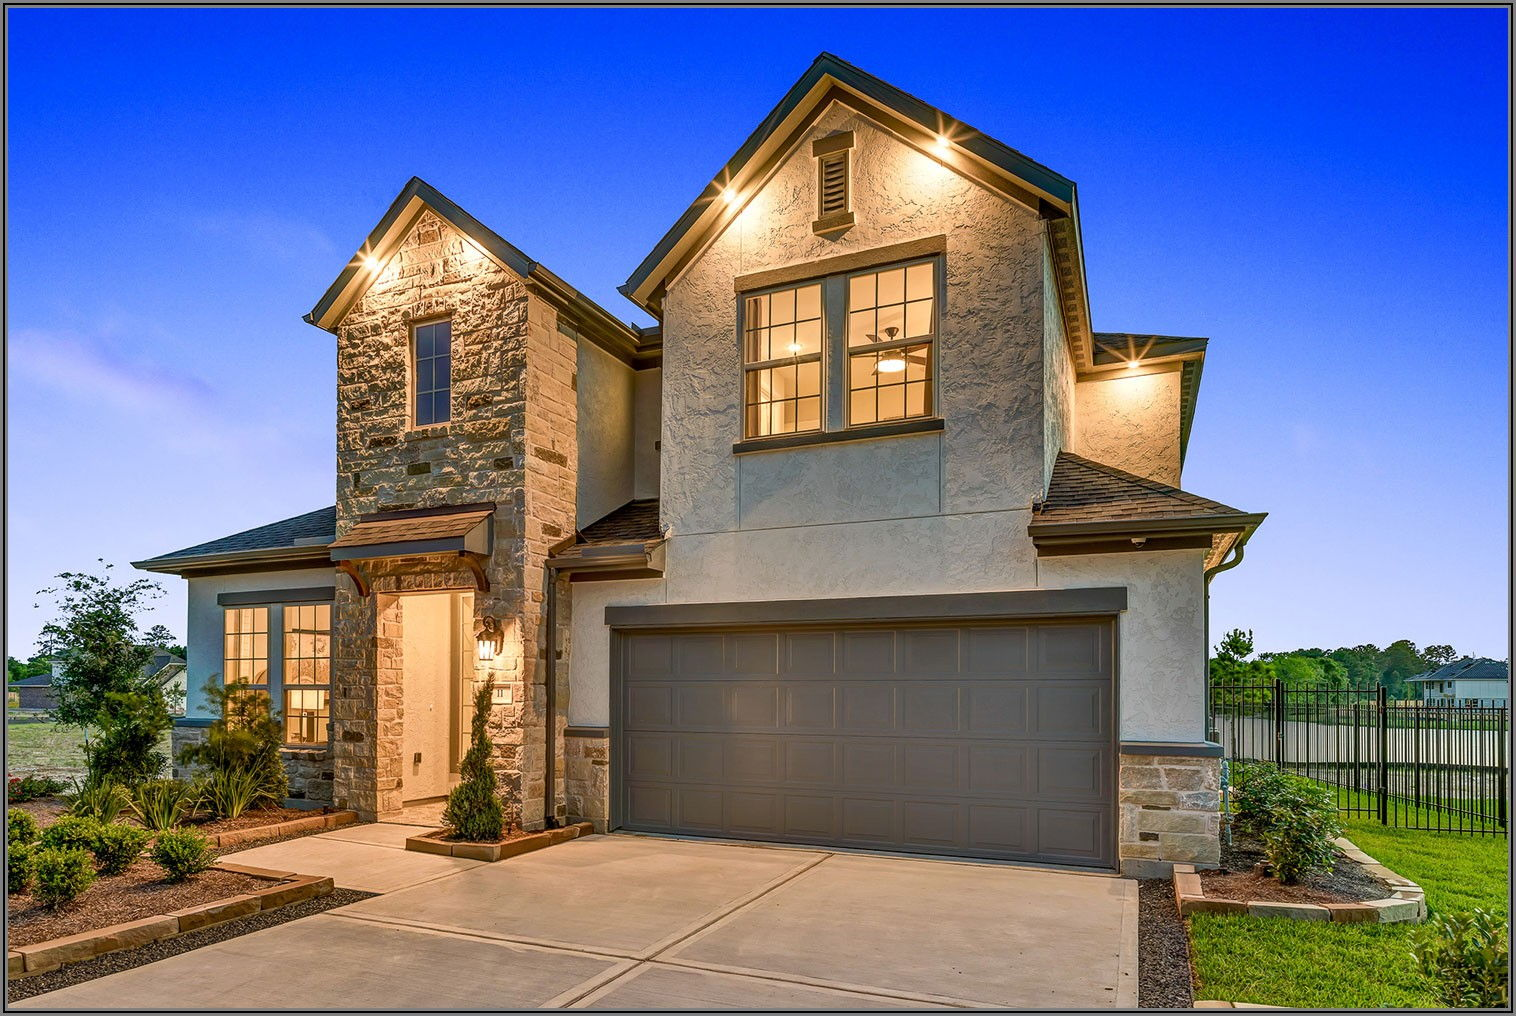 Darling Patio Homes In The Woodlands